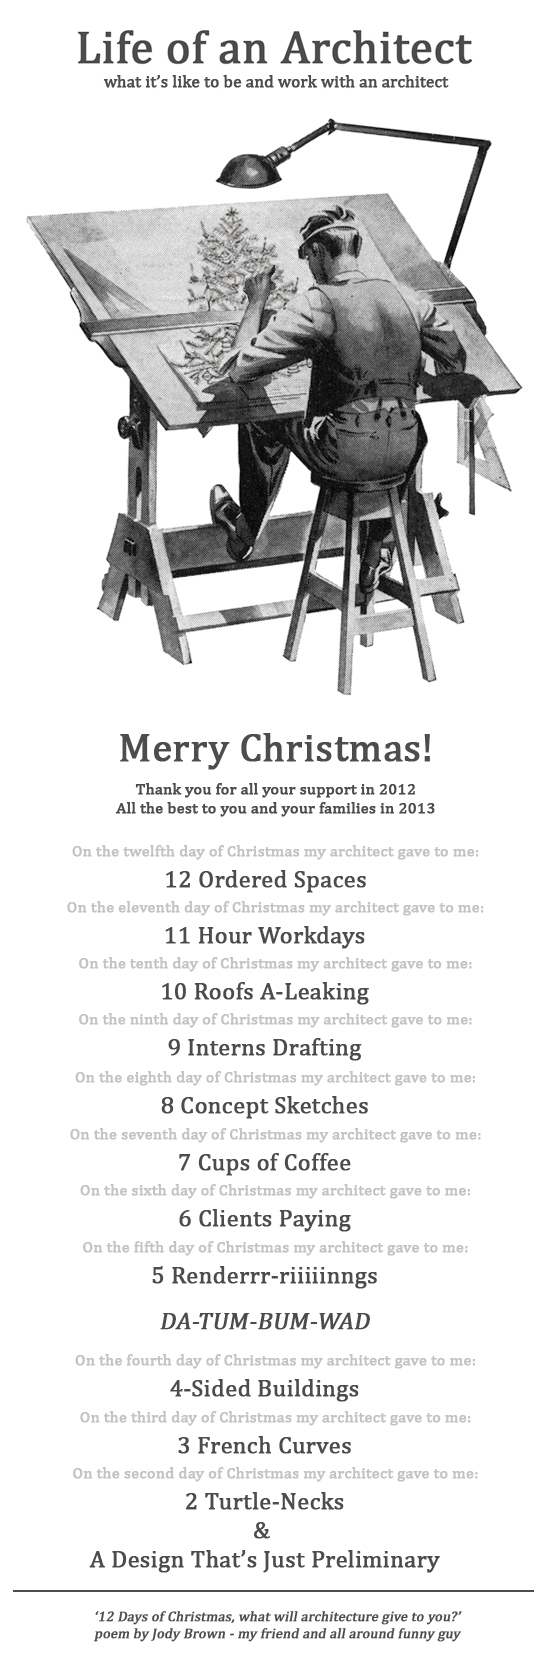 Life of an Architect Merry Christmas 2012 Holiday Card